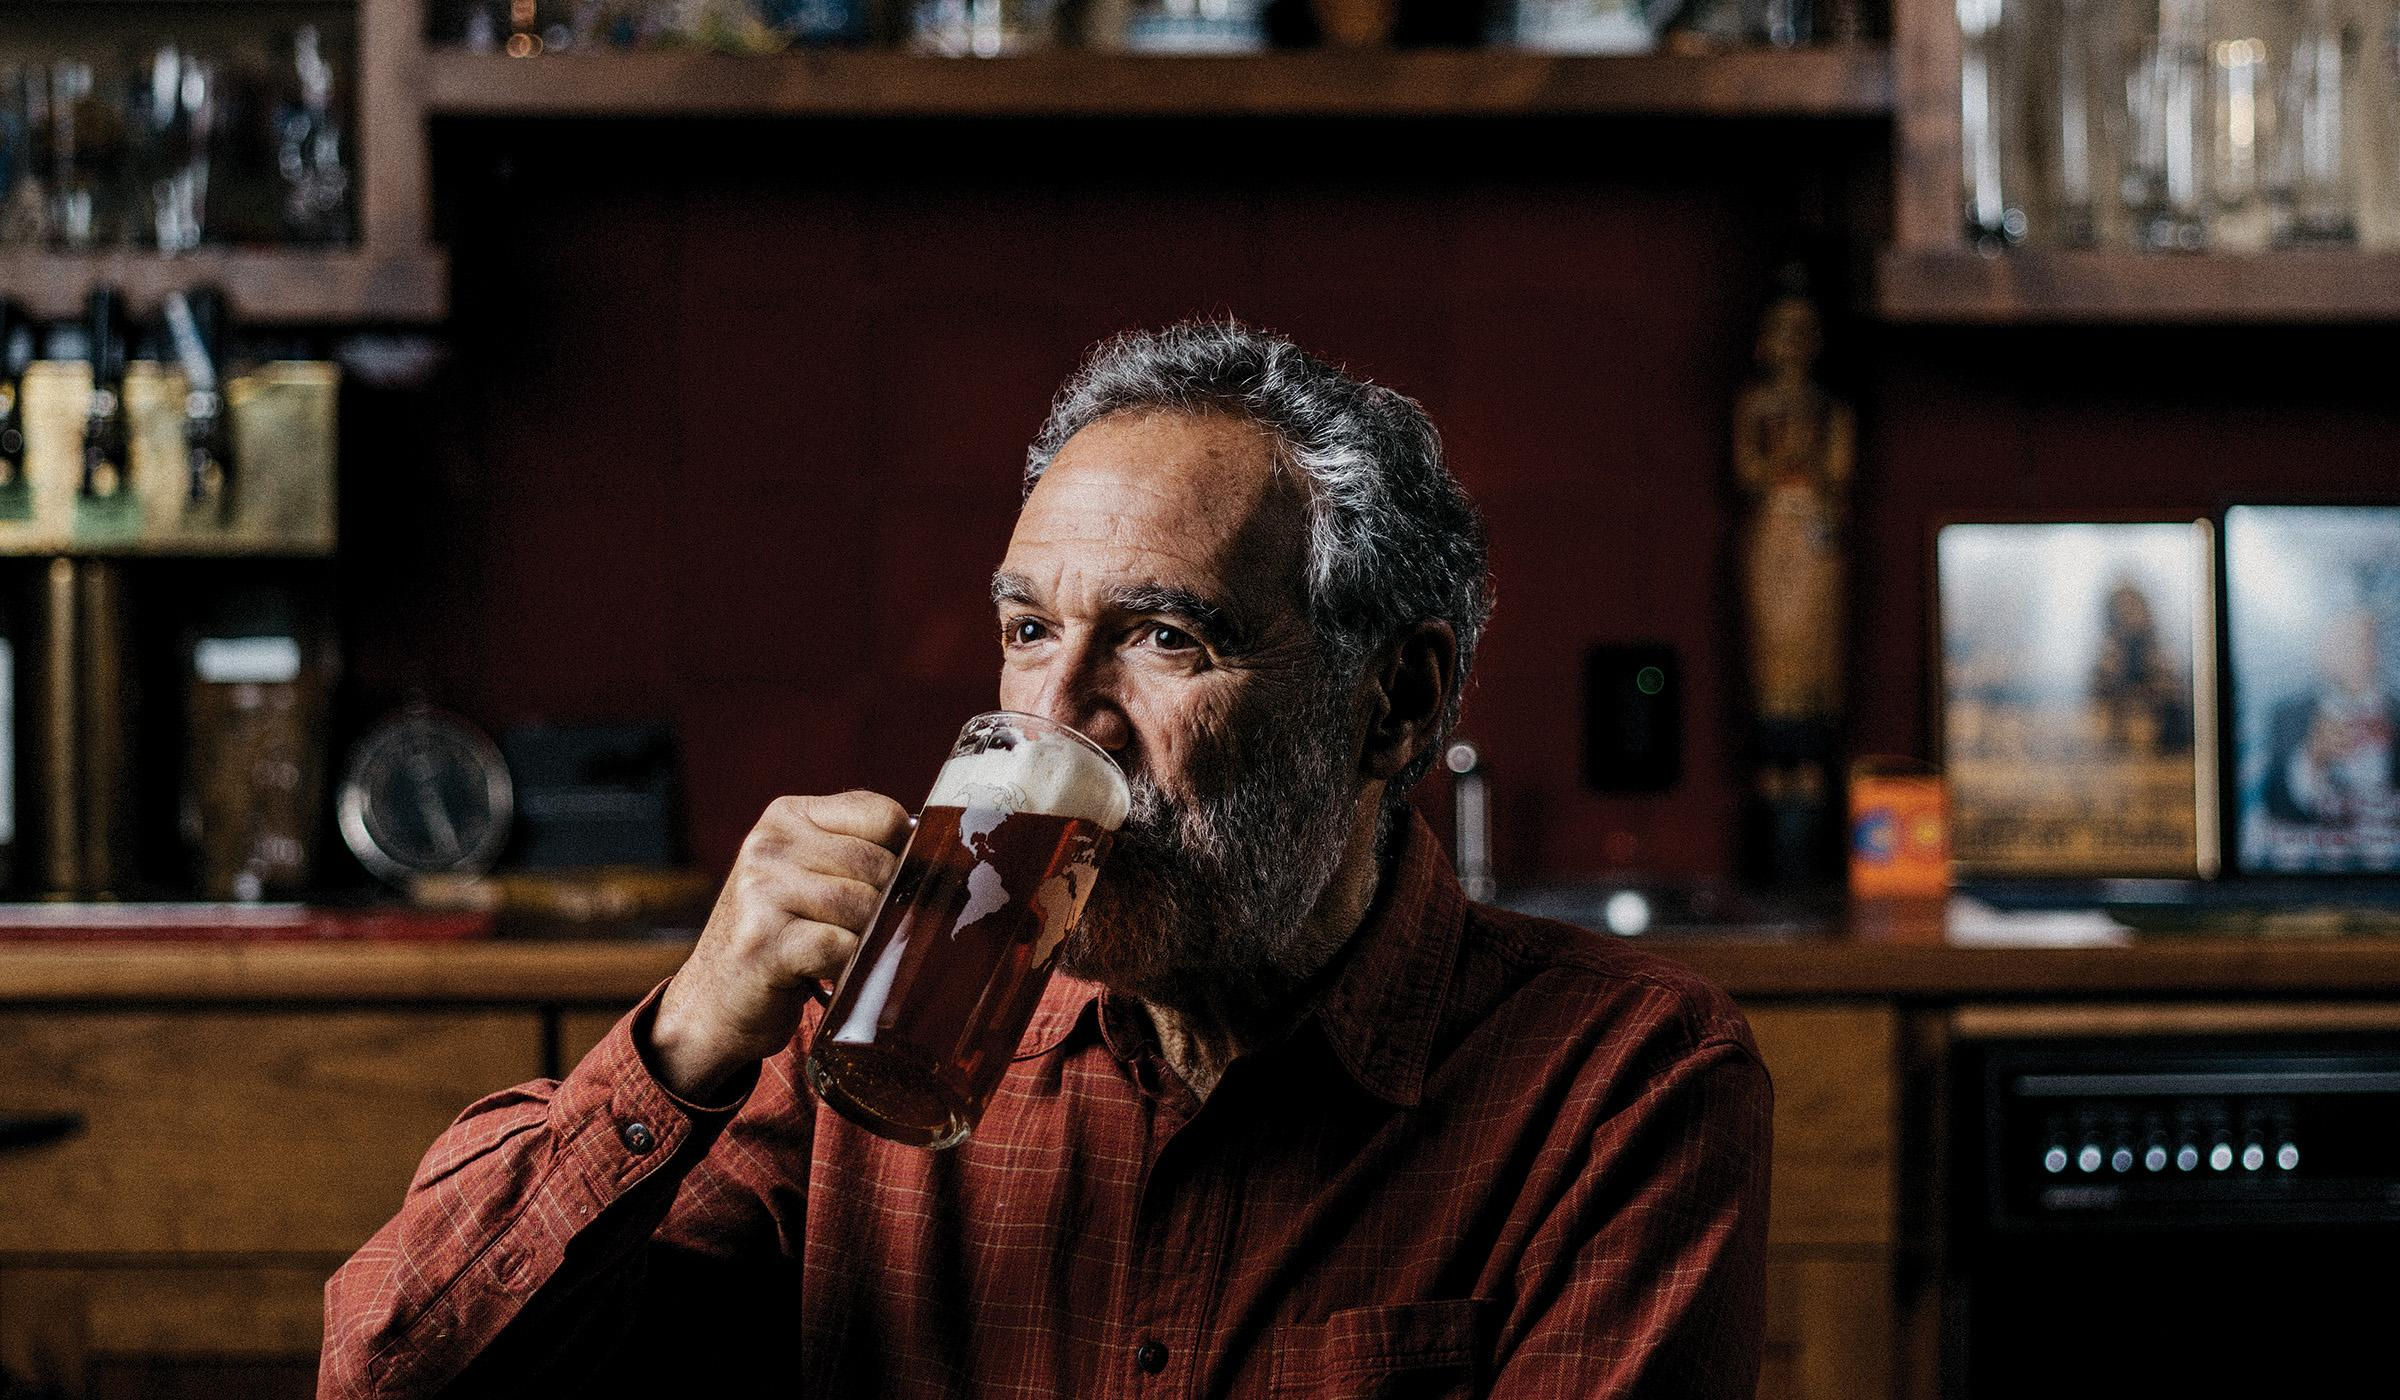 """For Papazian, the labor of brewing makes the result all the more enjoyable. """"The best beer in the world,"""" he likes to say, """"is the one you brewed."""""""